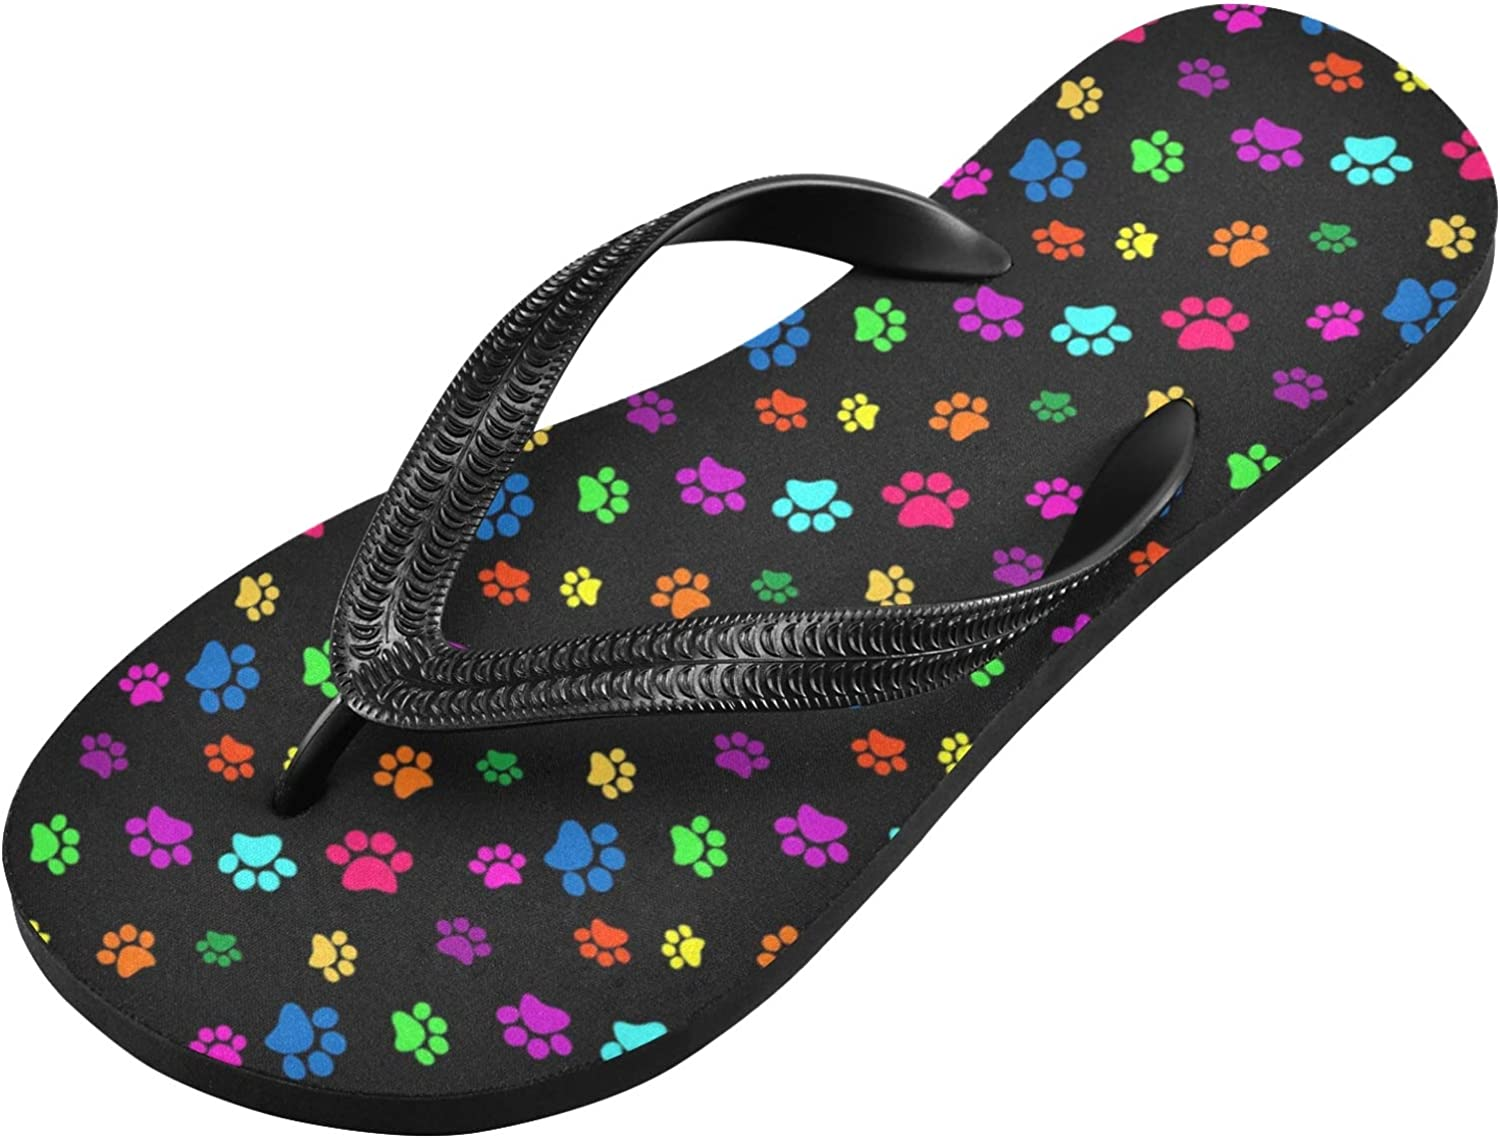 Qilmy Colorful Dog Paw Print Flip Flop Casual Lightweight Non-slip Summer Sandals Women's Men Slippers,S